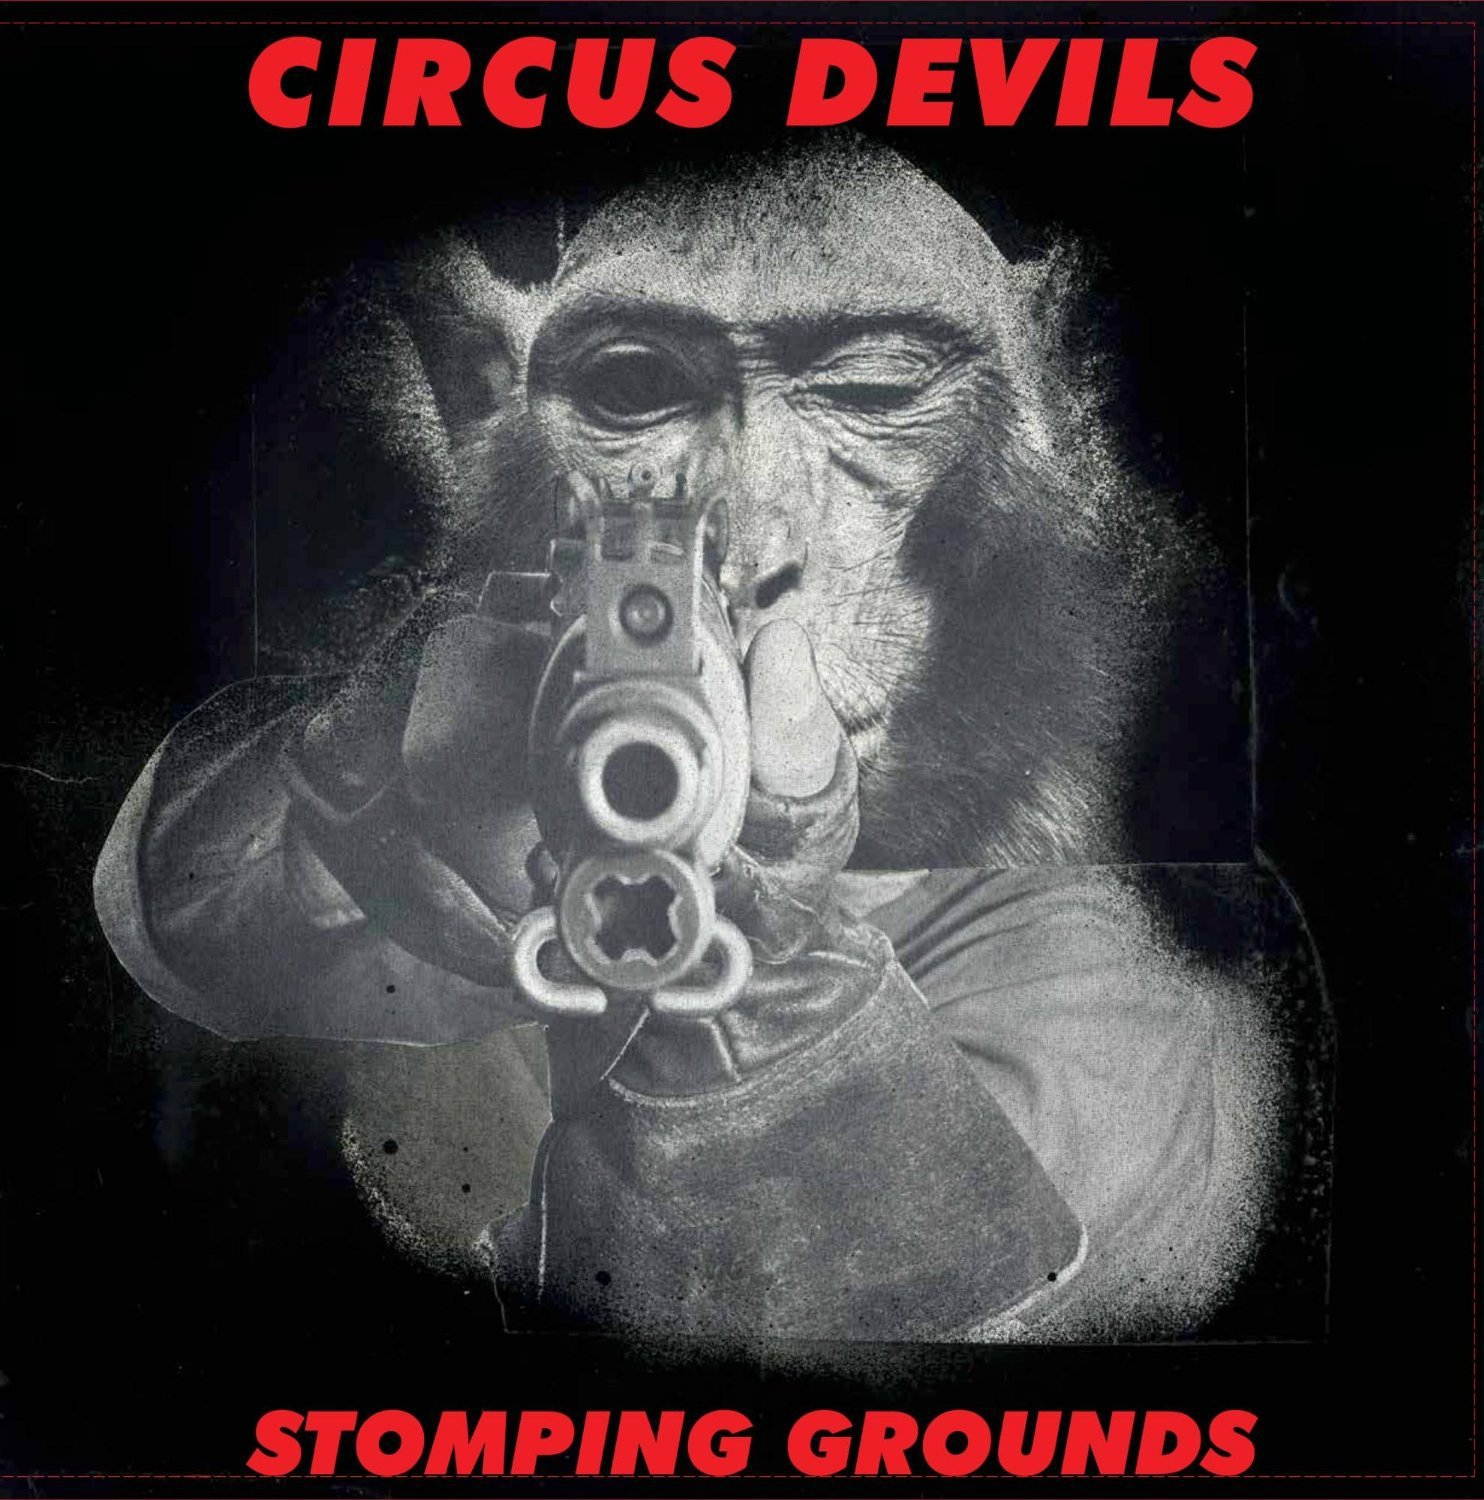 Circus Devils: Stomping Grounds [Album Review]